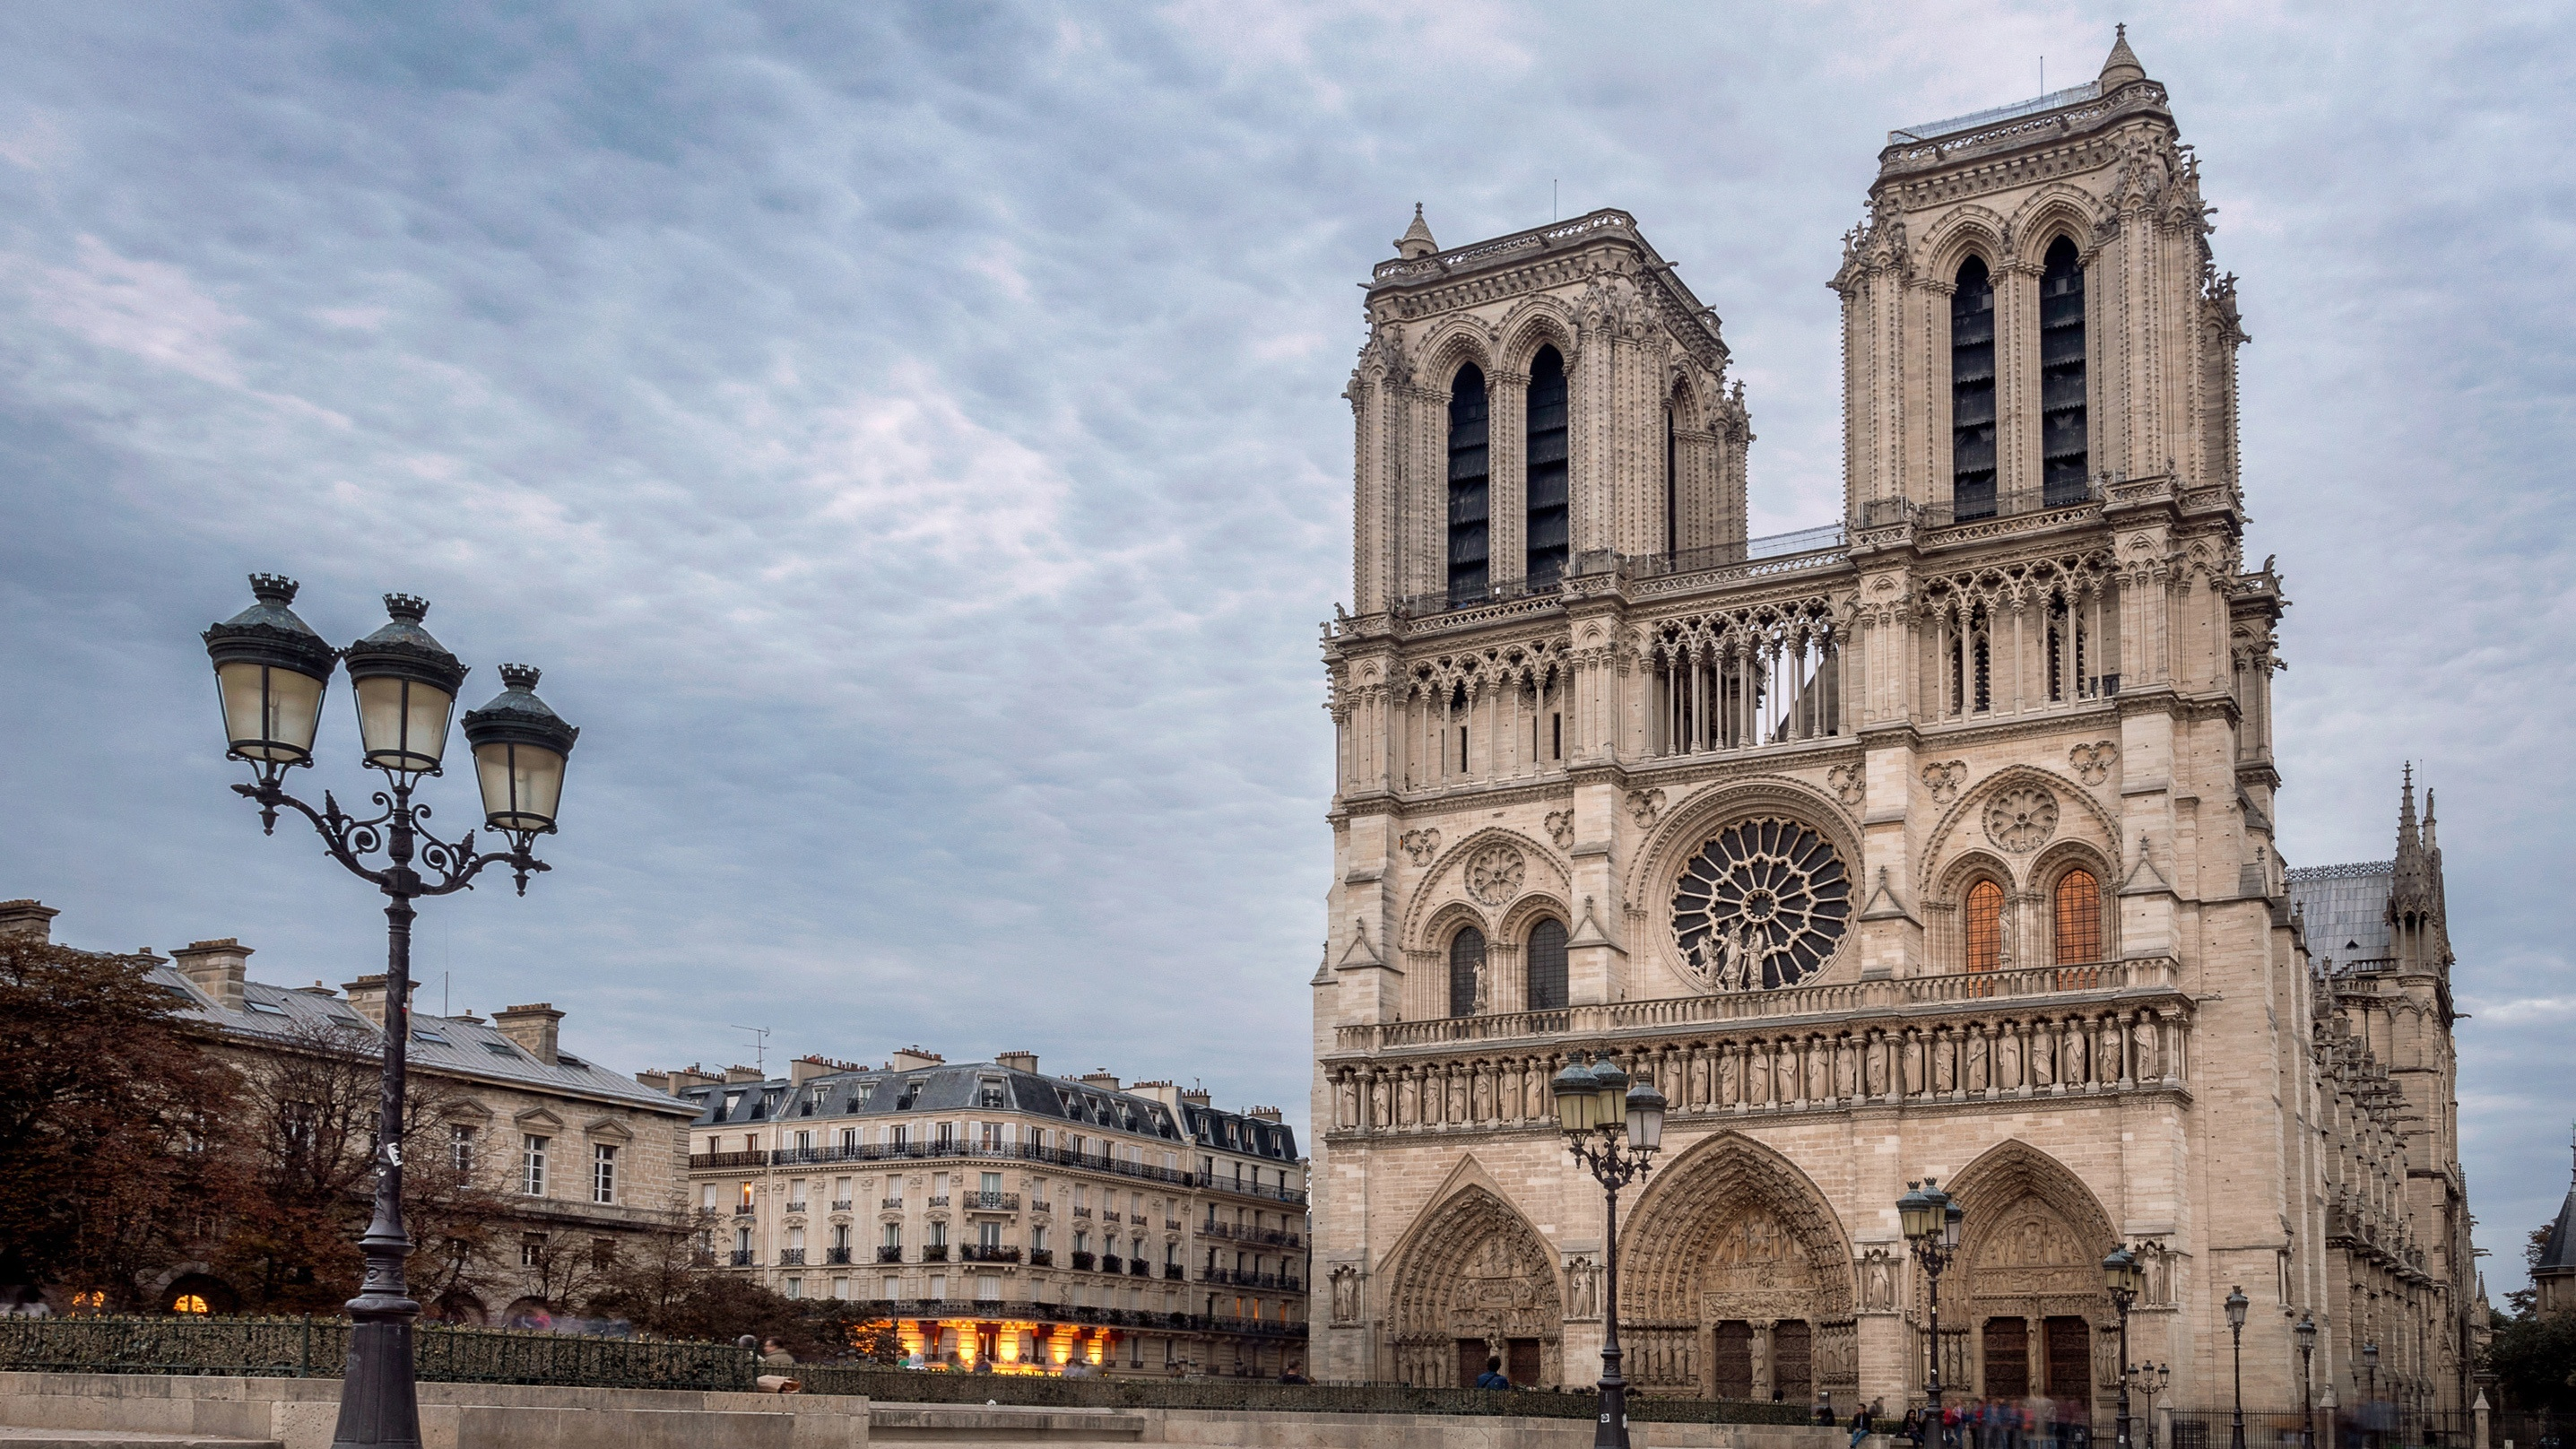 Rebuilding Notre Dame: A Guide for Architectural Technicians